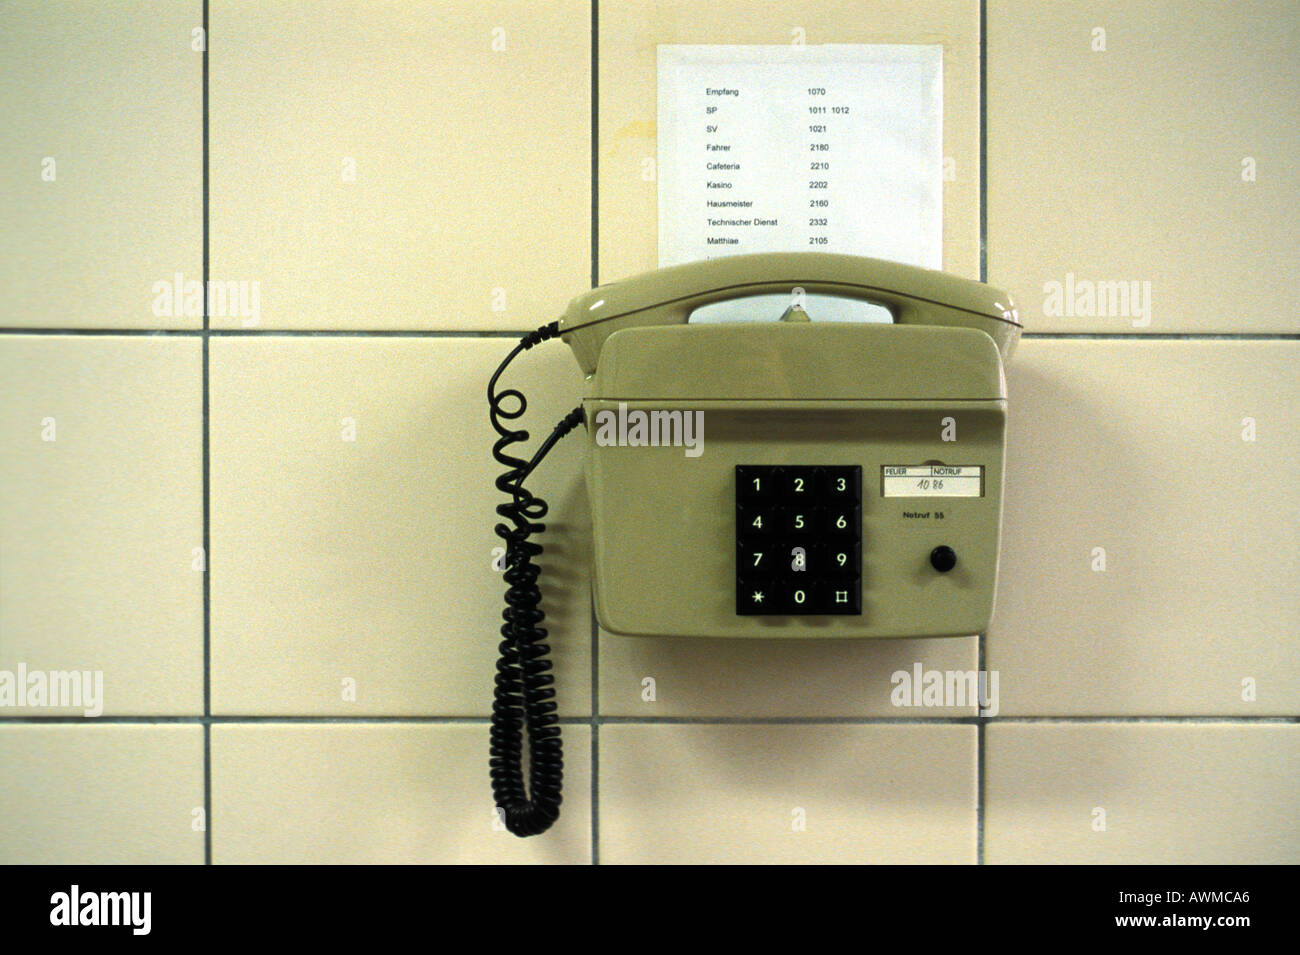 Close-up of phone against tiled wall - Stock Image